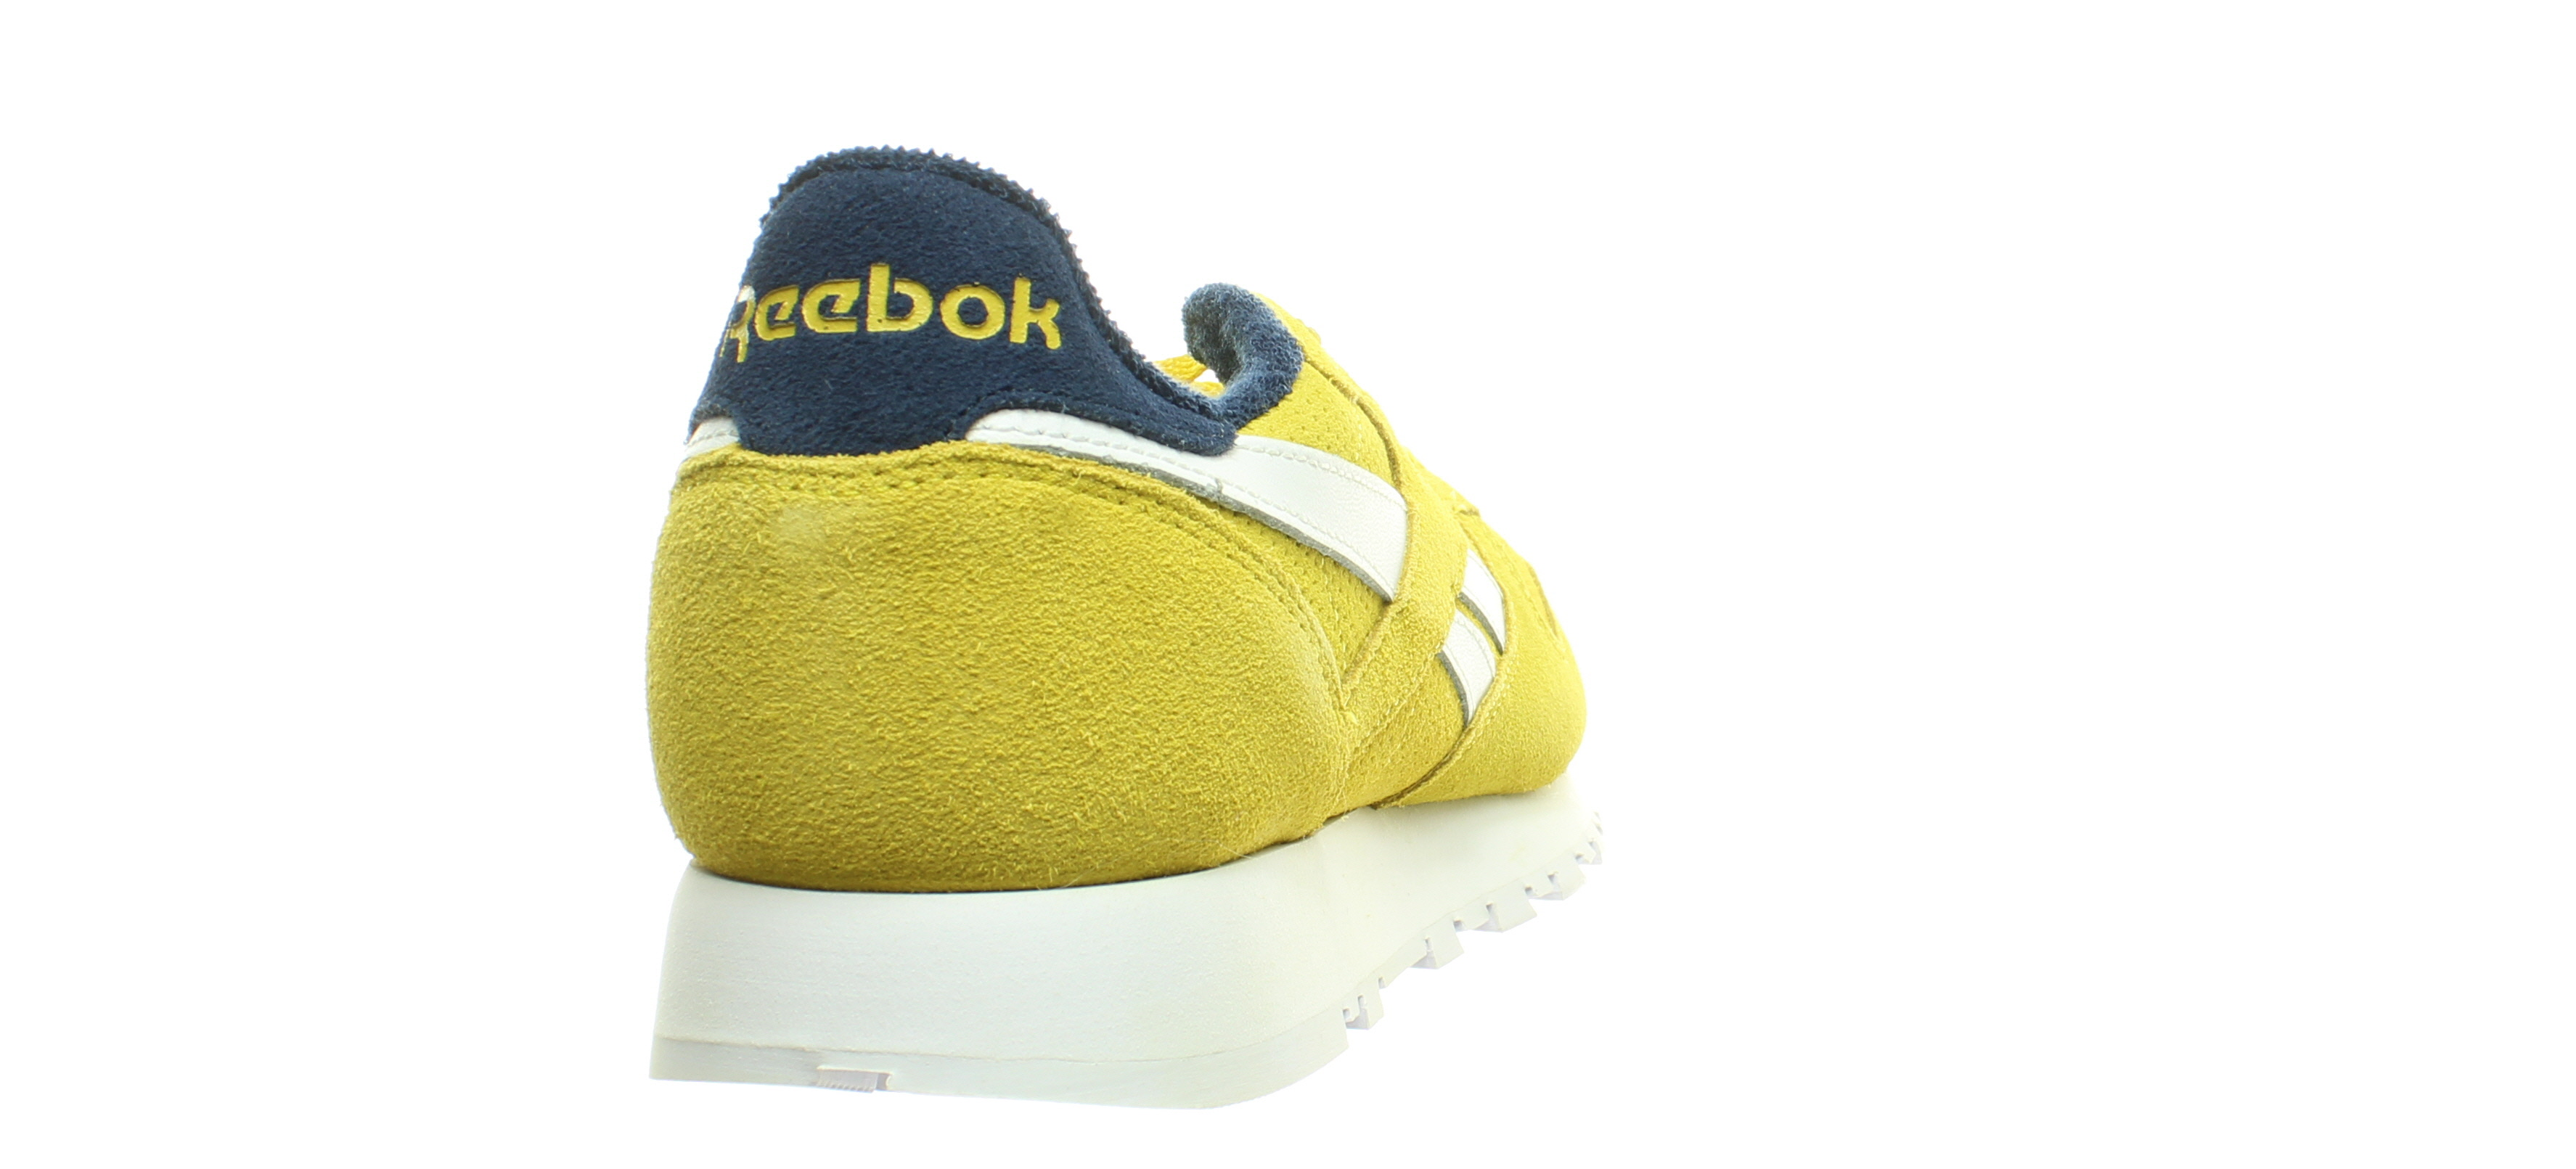 Reebok Mens Classic Leather Urban Yellow//Collegiate Navy Running Shoes Size 7.5